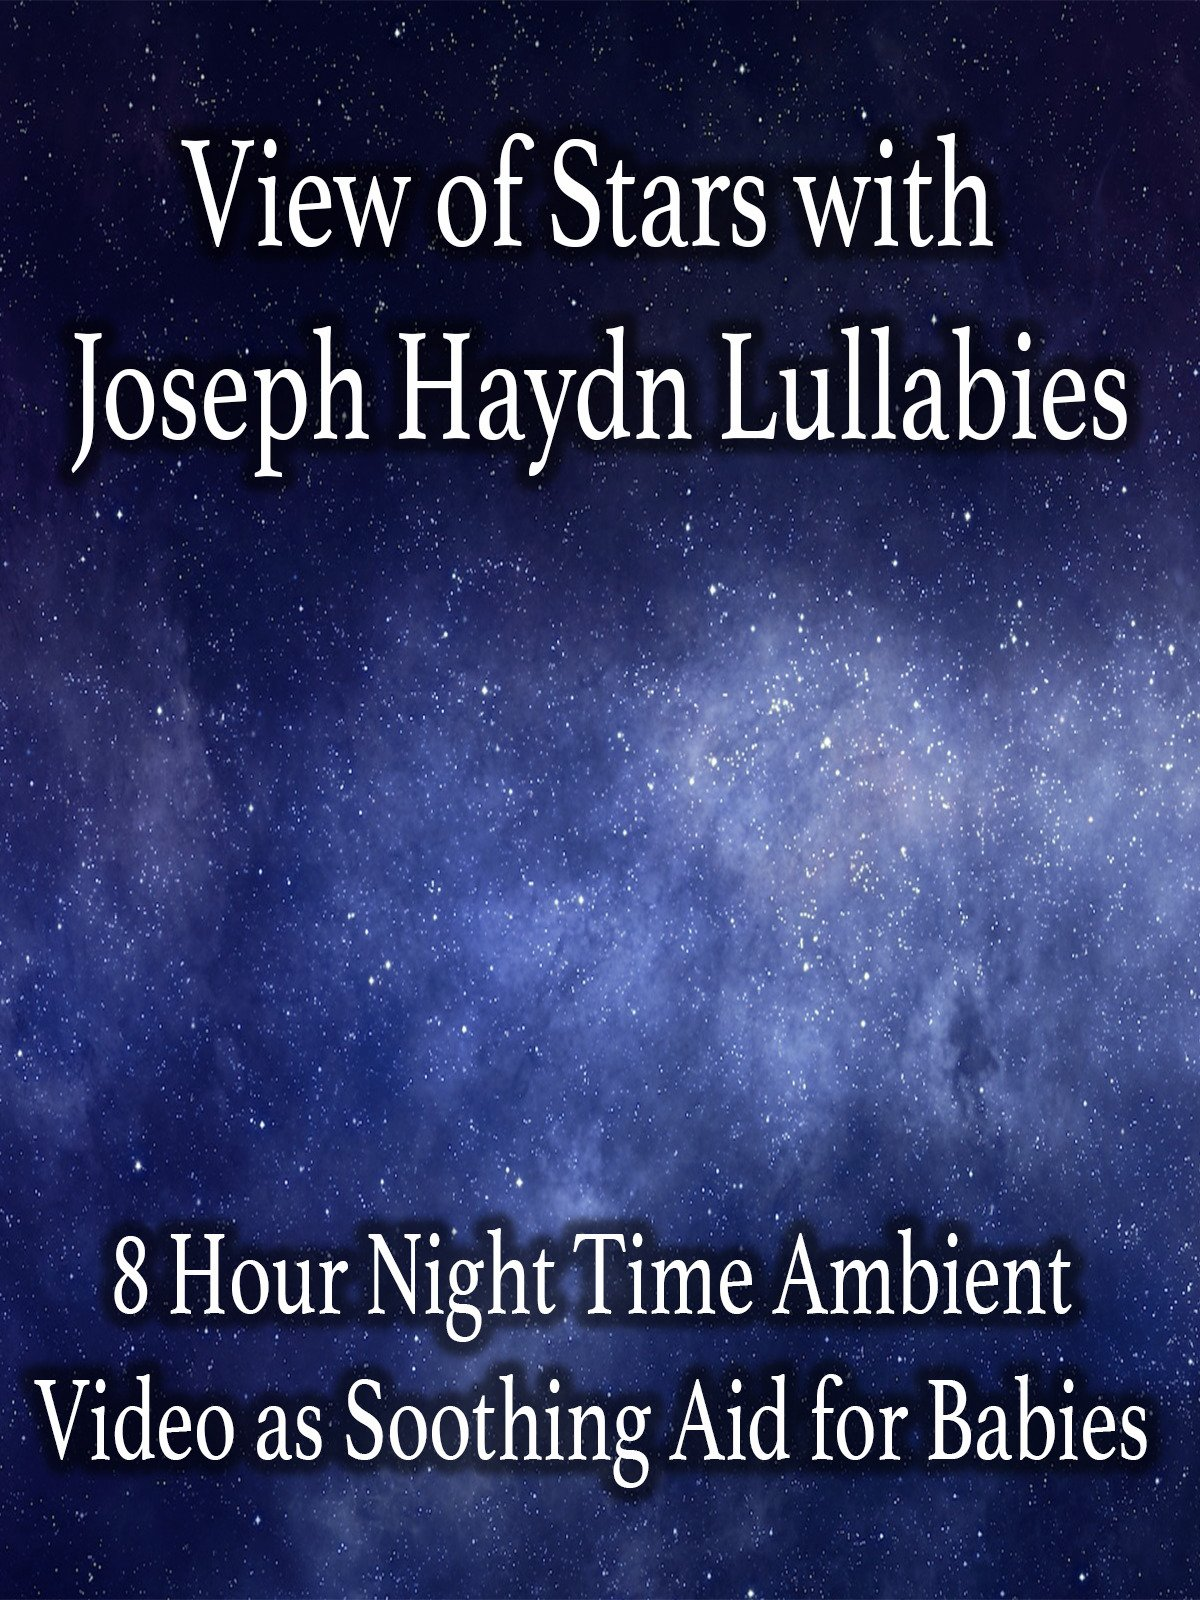 View of Stars with Joseph Haydn Lullabies 8 Hour Night Time Ambient Video as Soothing Aid for Babies